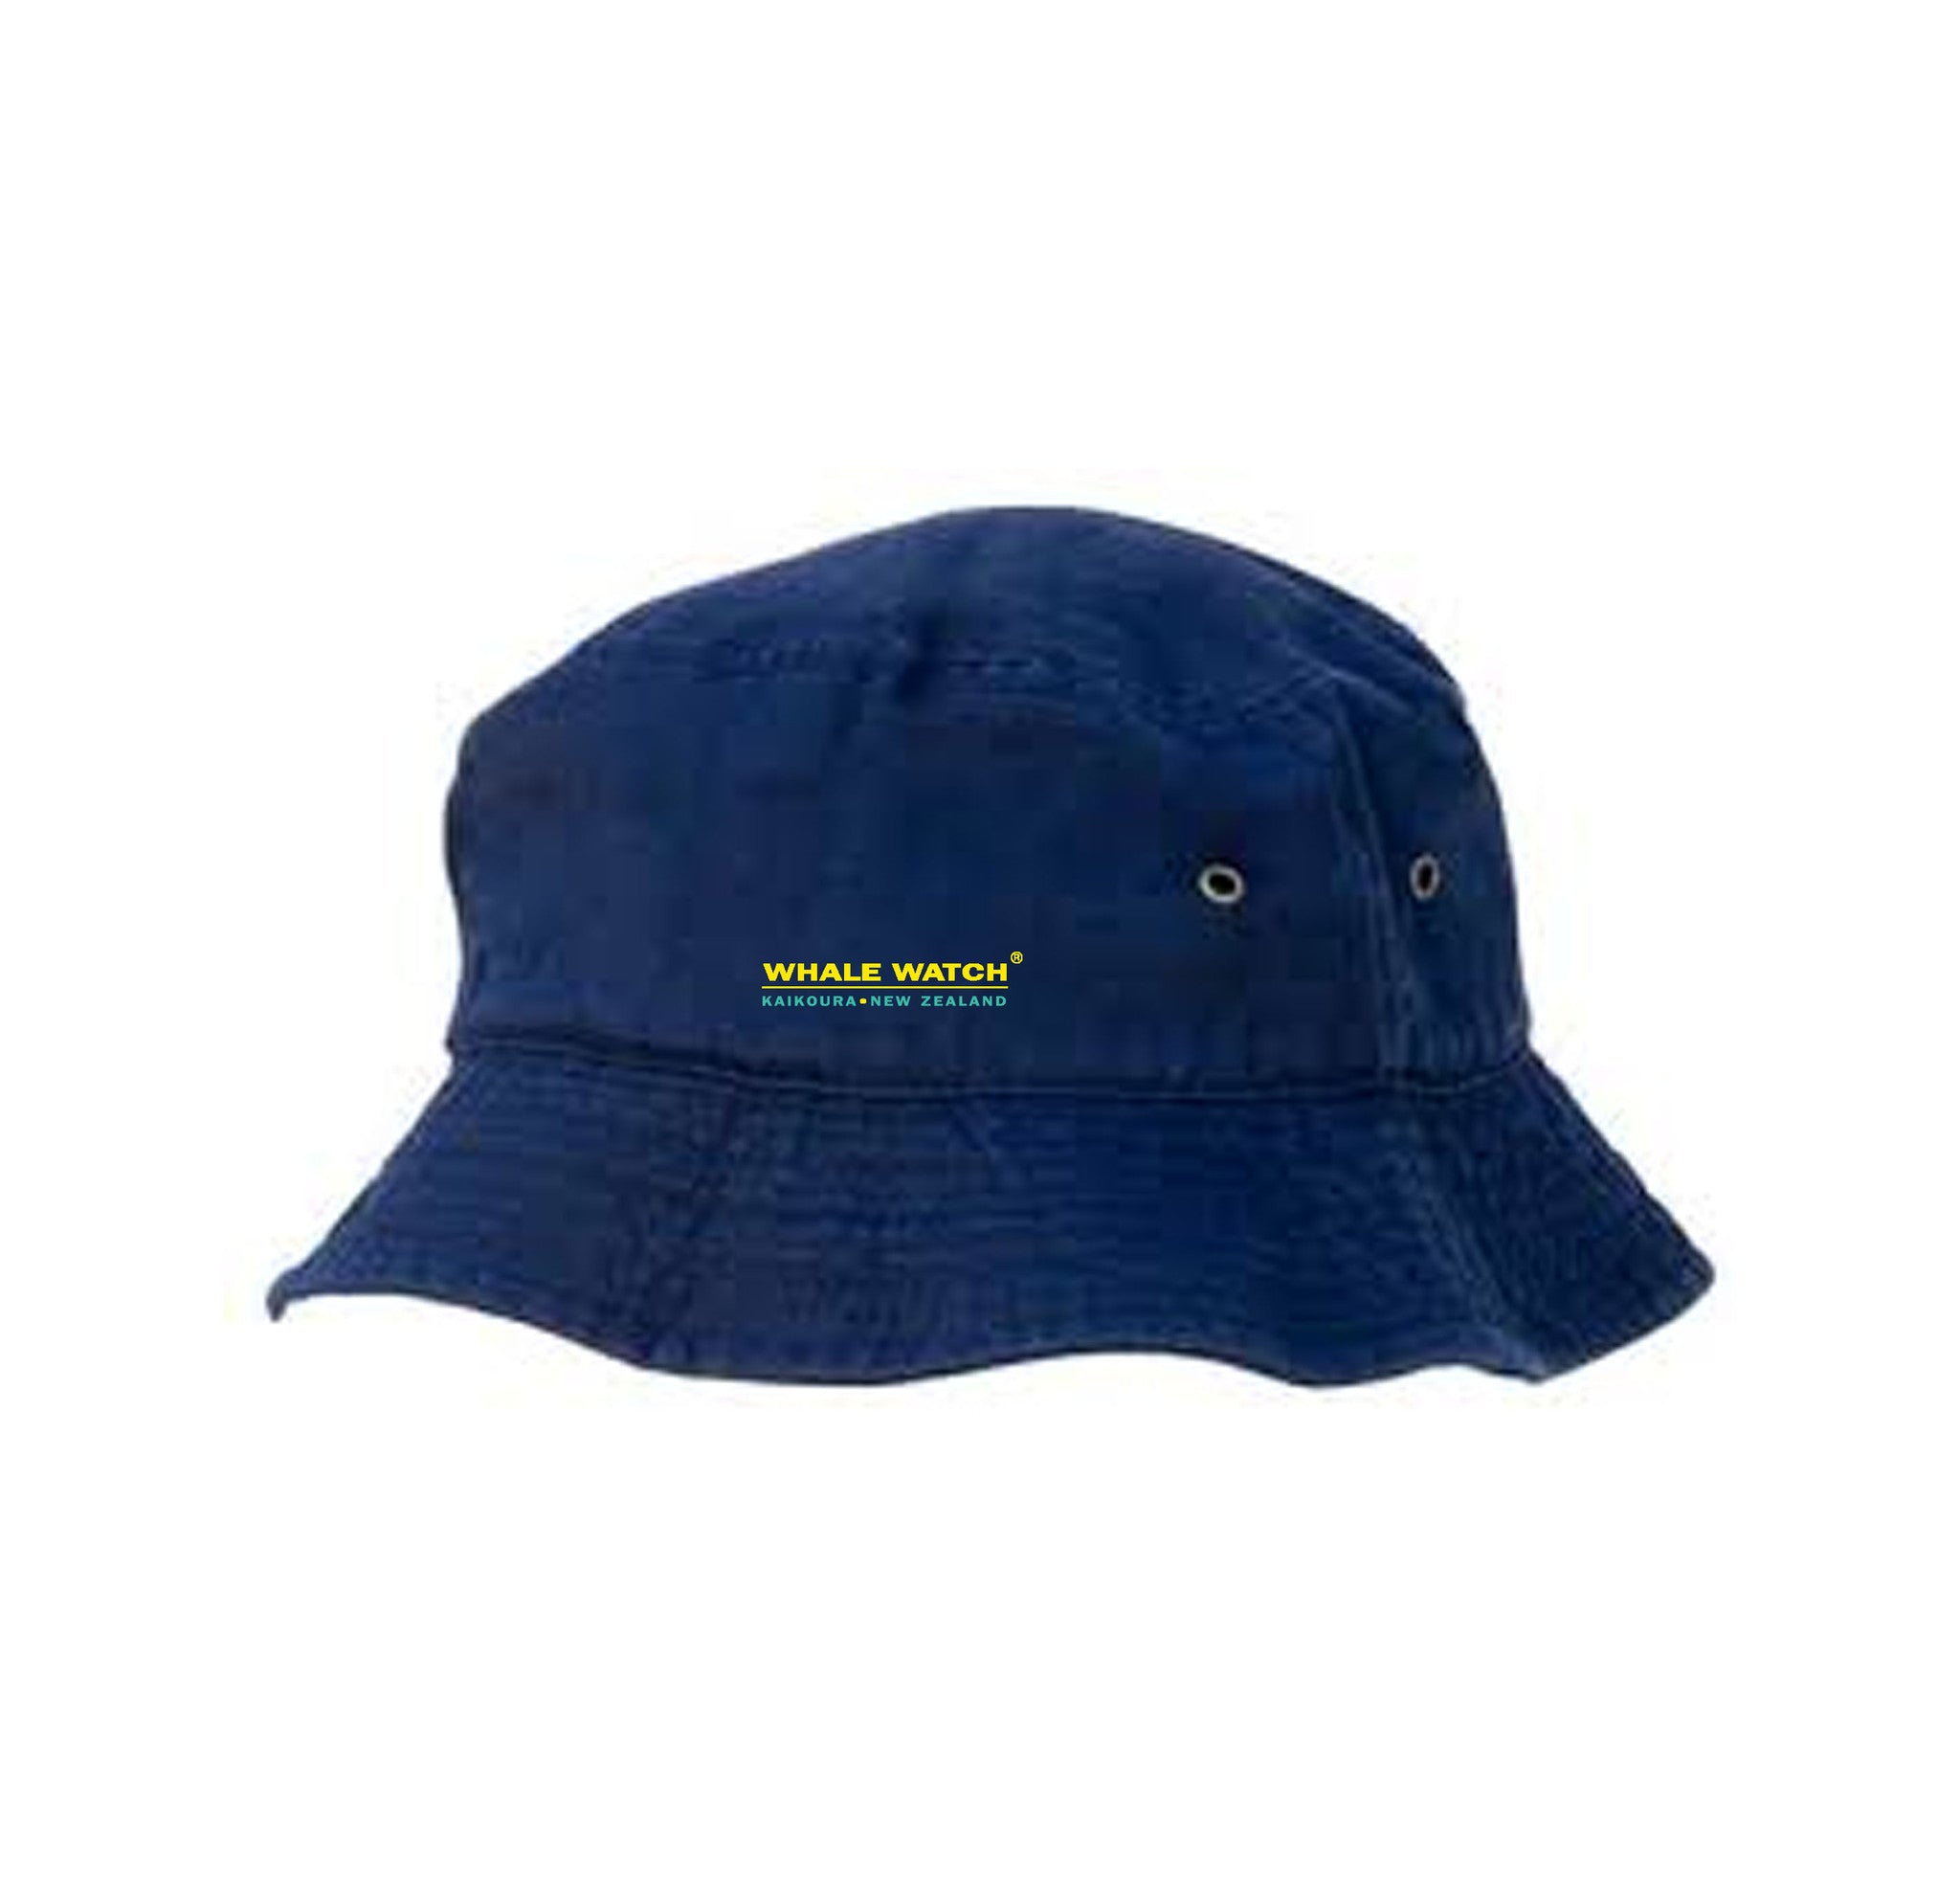 Whale Watch Kaikoura branded bucket hat